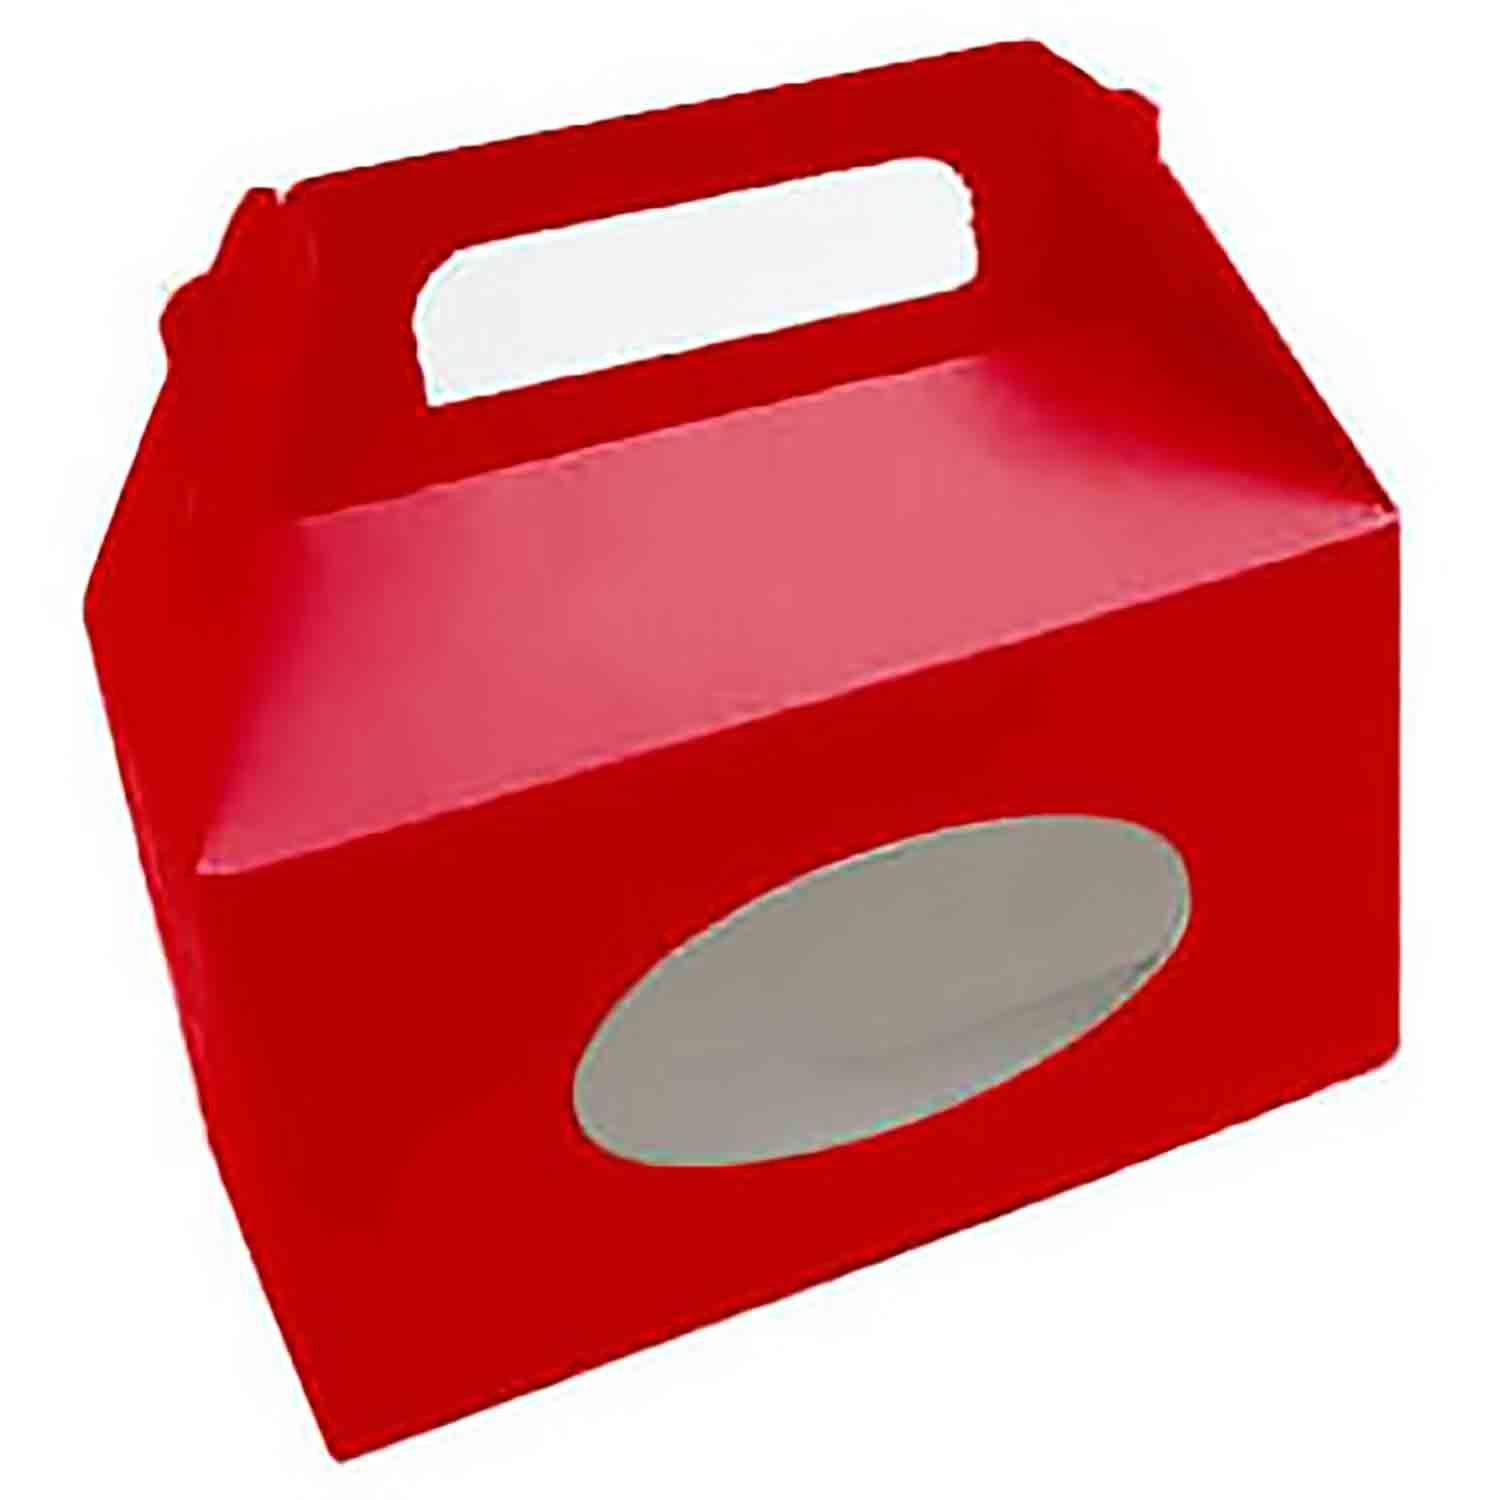 1 1/2 lb. Red Tote Candy Box with Window